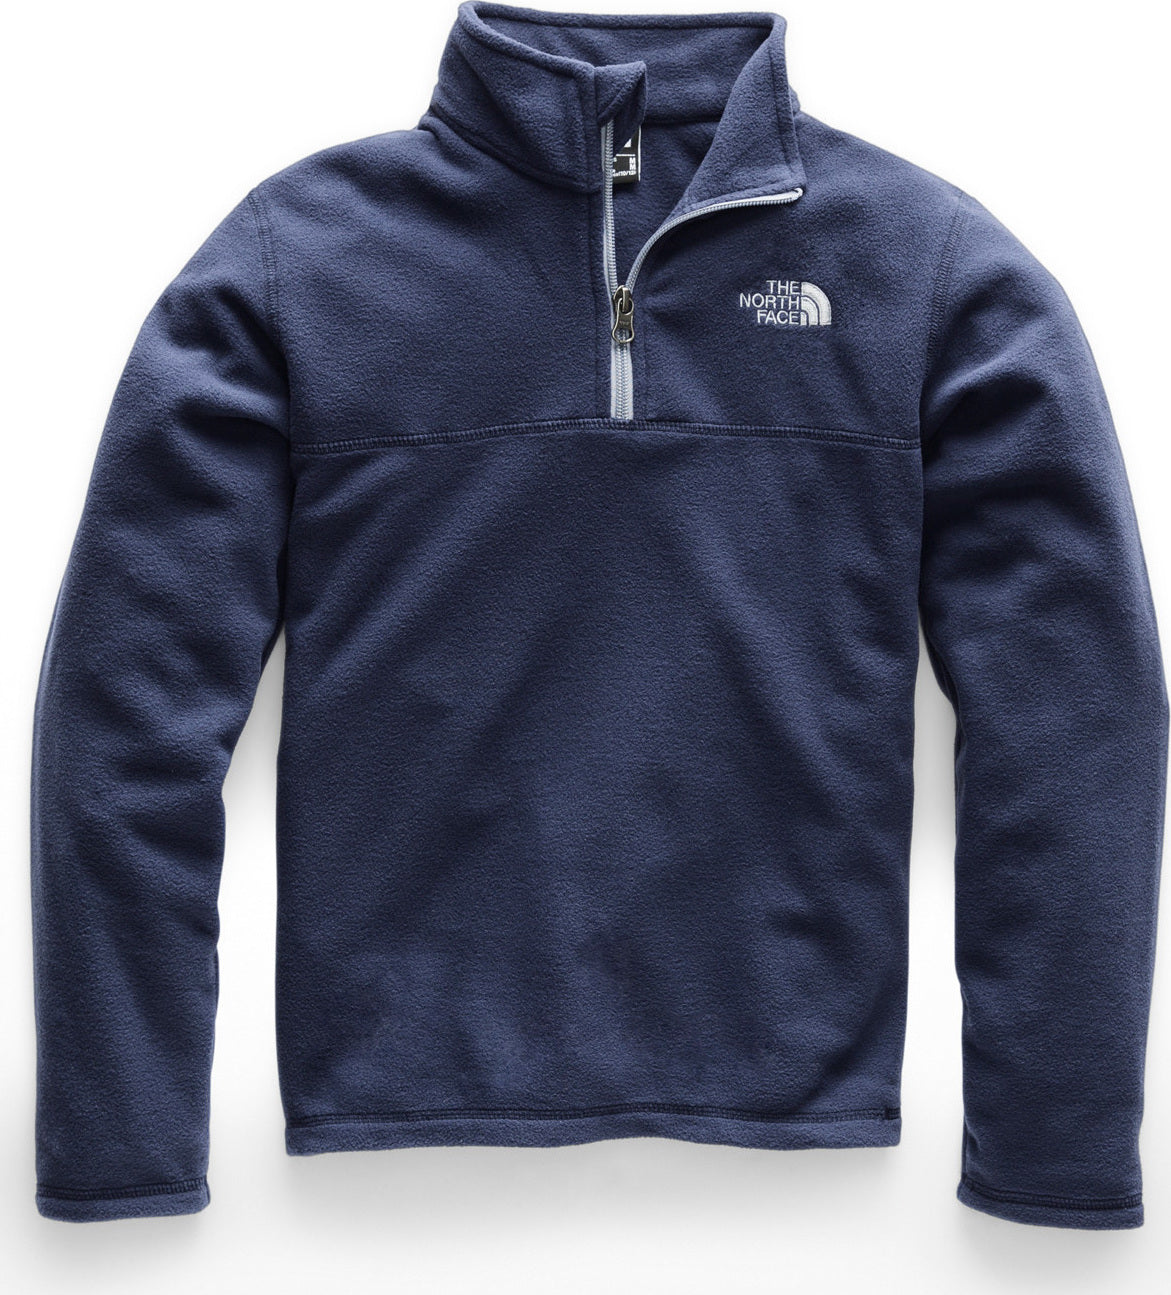 b1387284a The North Face Boy's Glacier 1/4 Zip | Altitude Sports